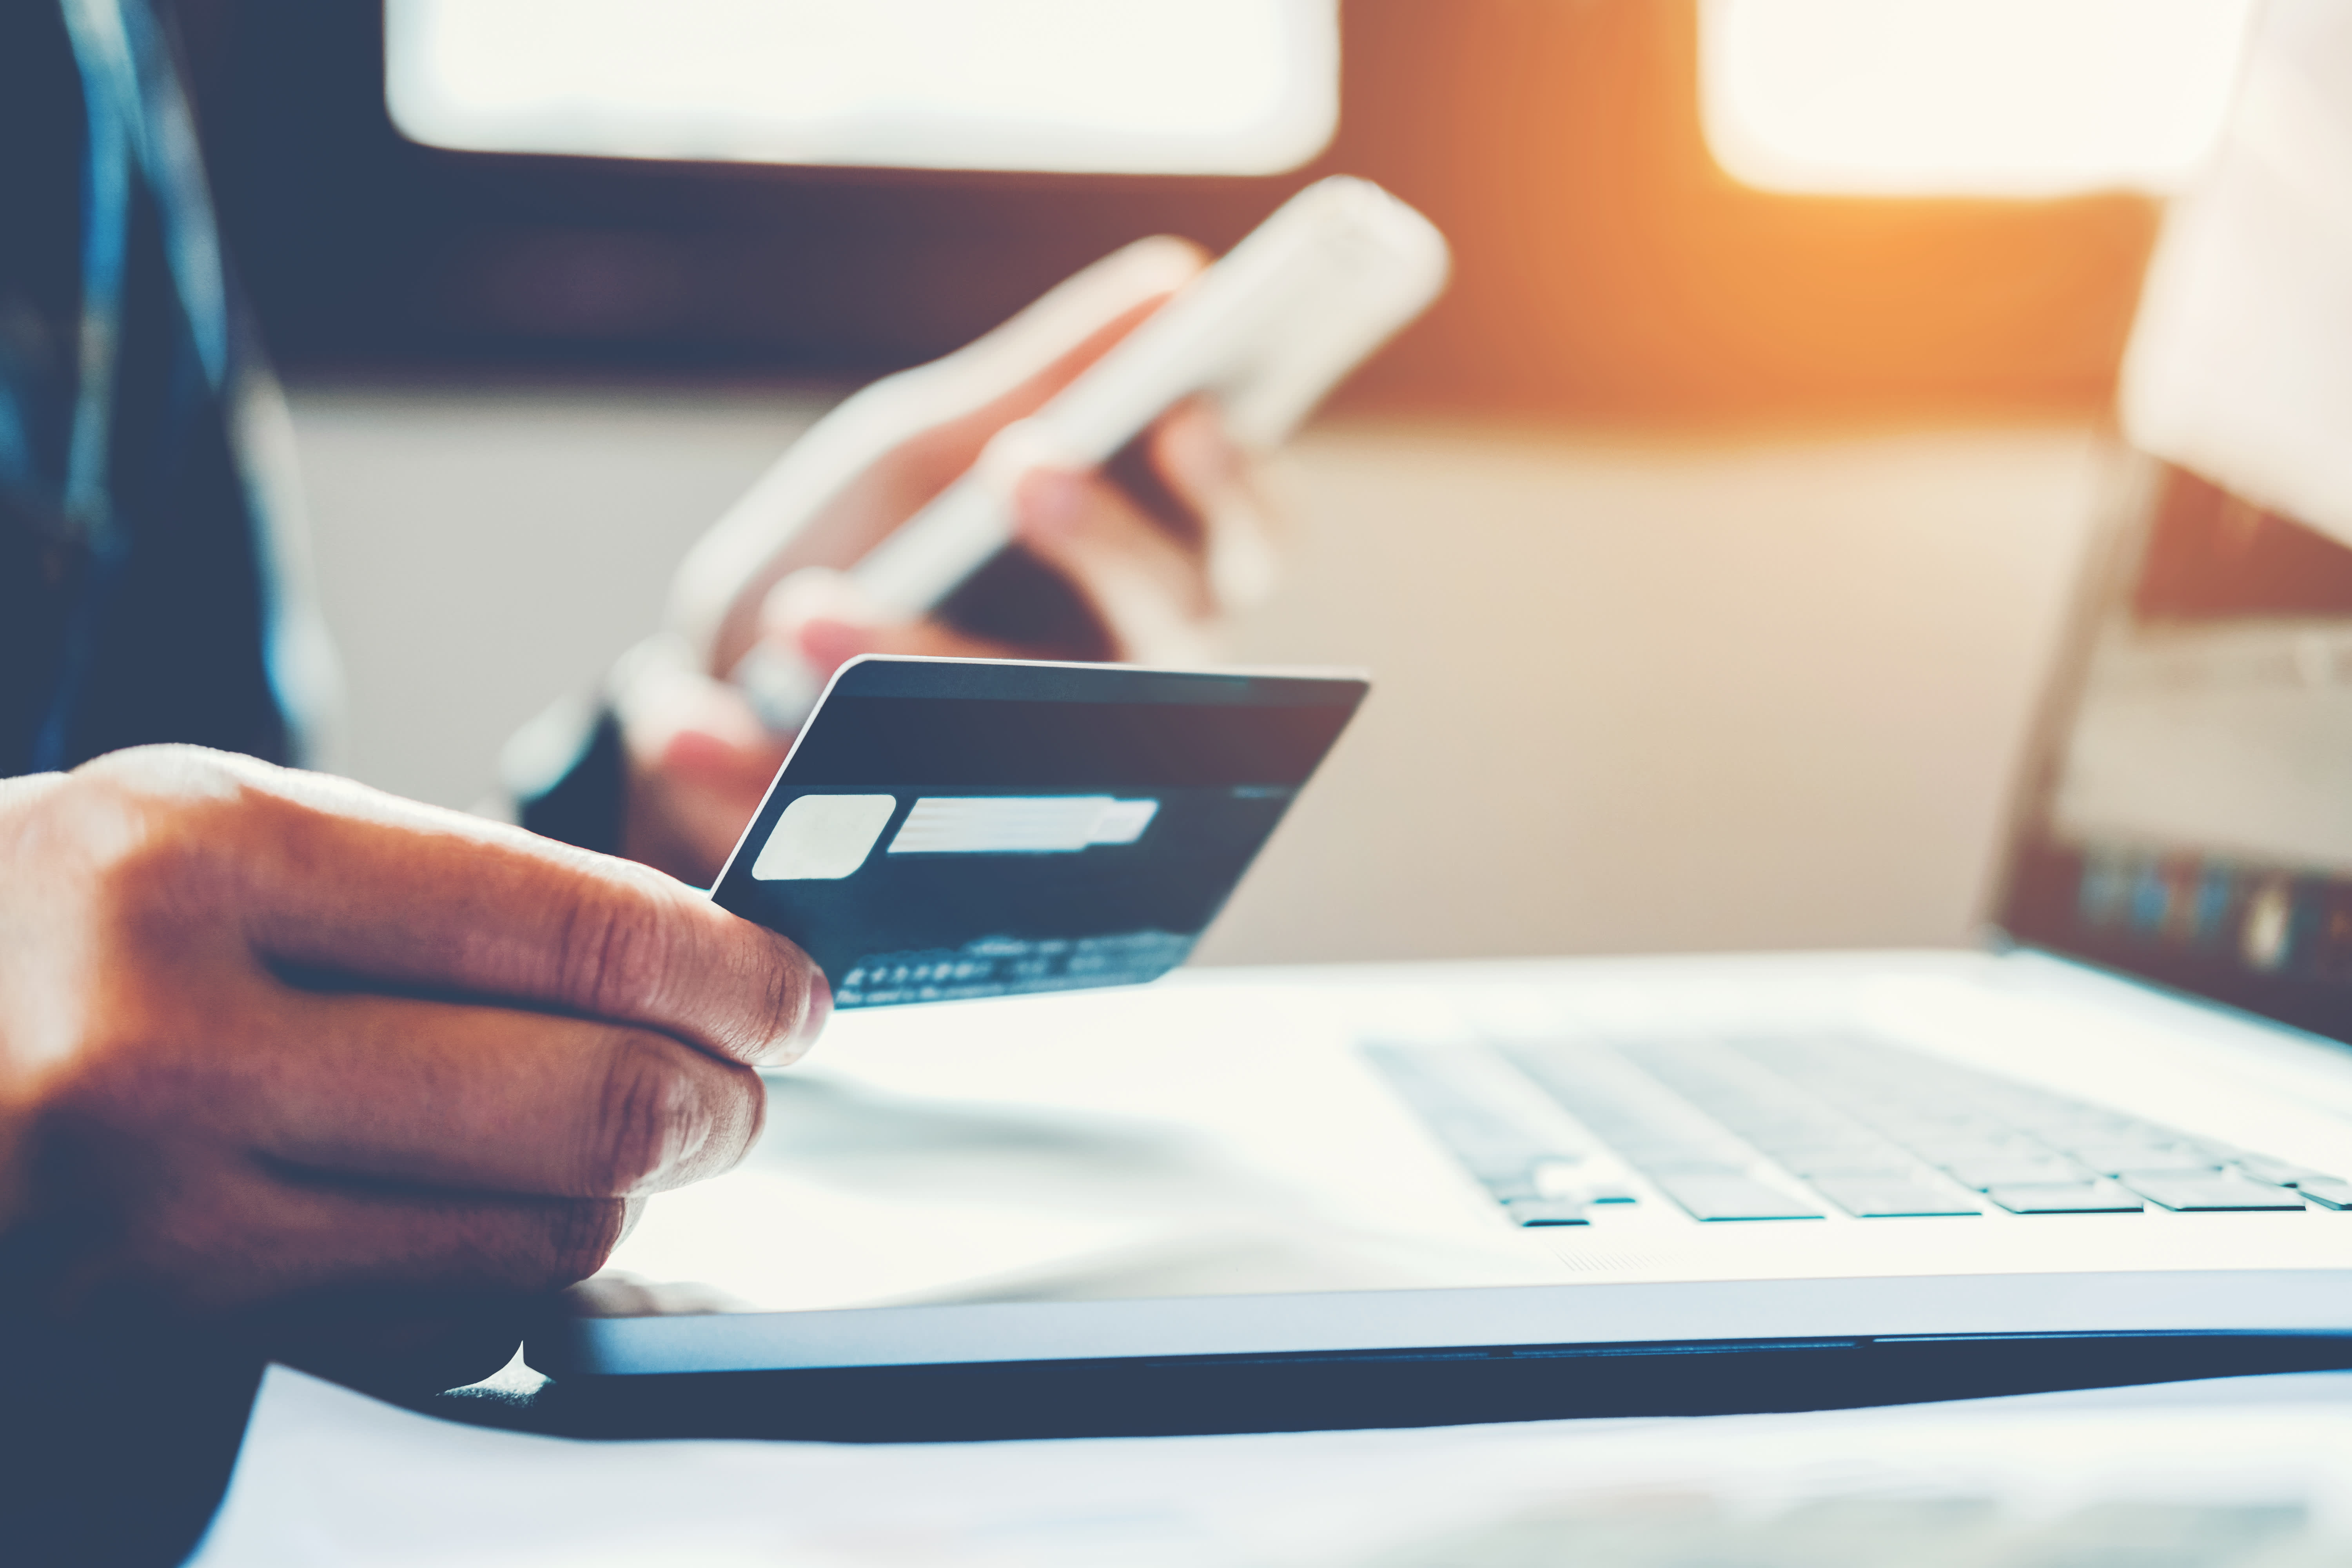 10 common credit card mistakes you may be making and how to avoid them